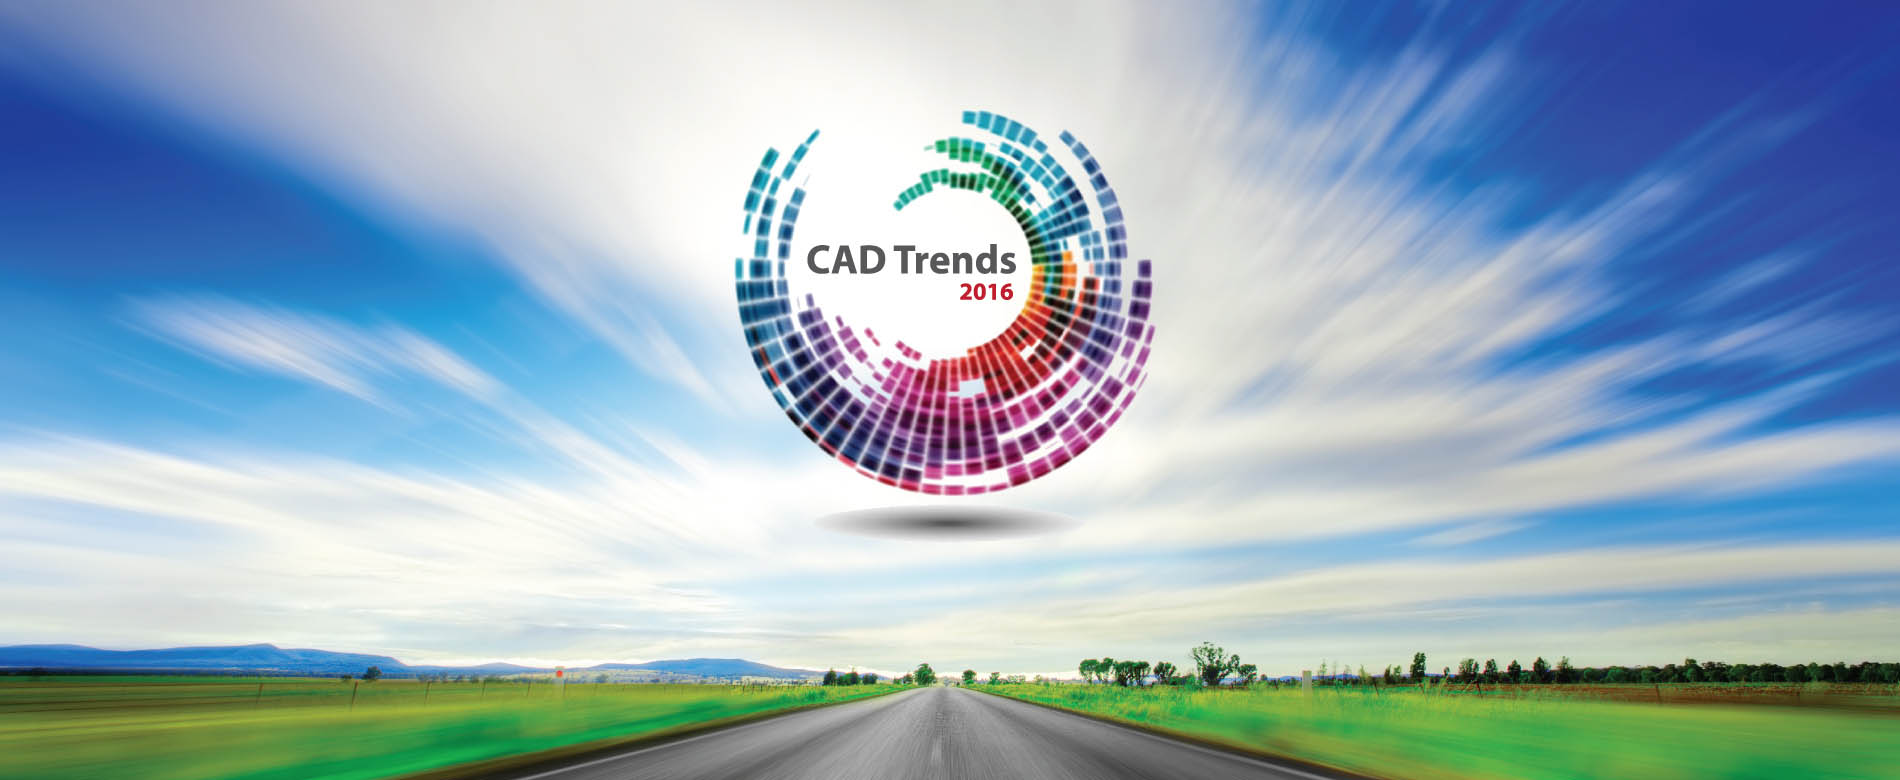 CAD Trends 2016